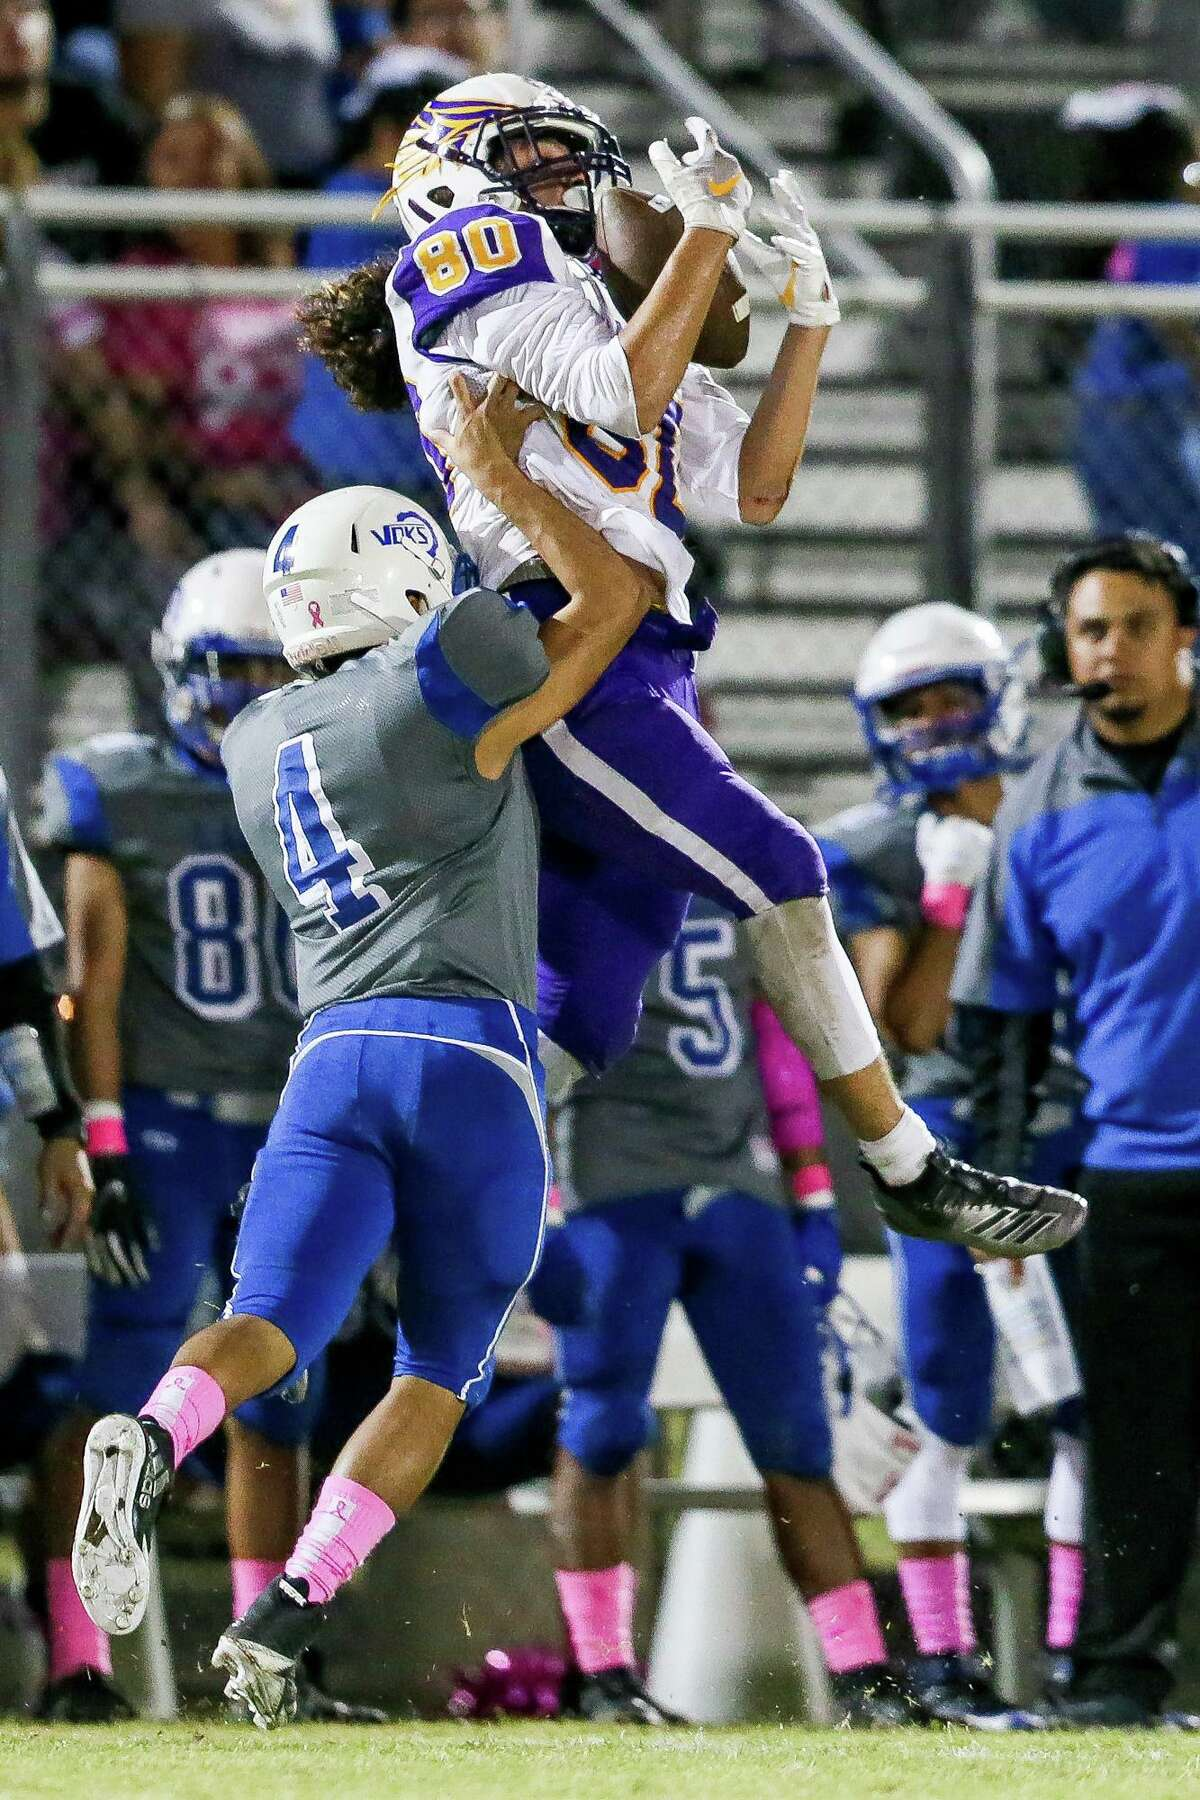 Brackenridge's Michael Puente recorded three interceptions and a pass breakup in a victory against Lanier.